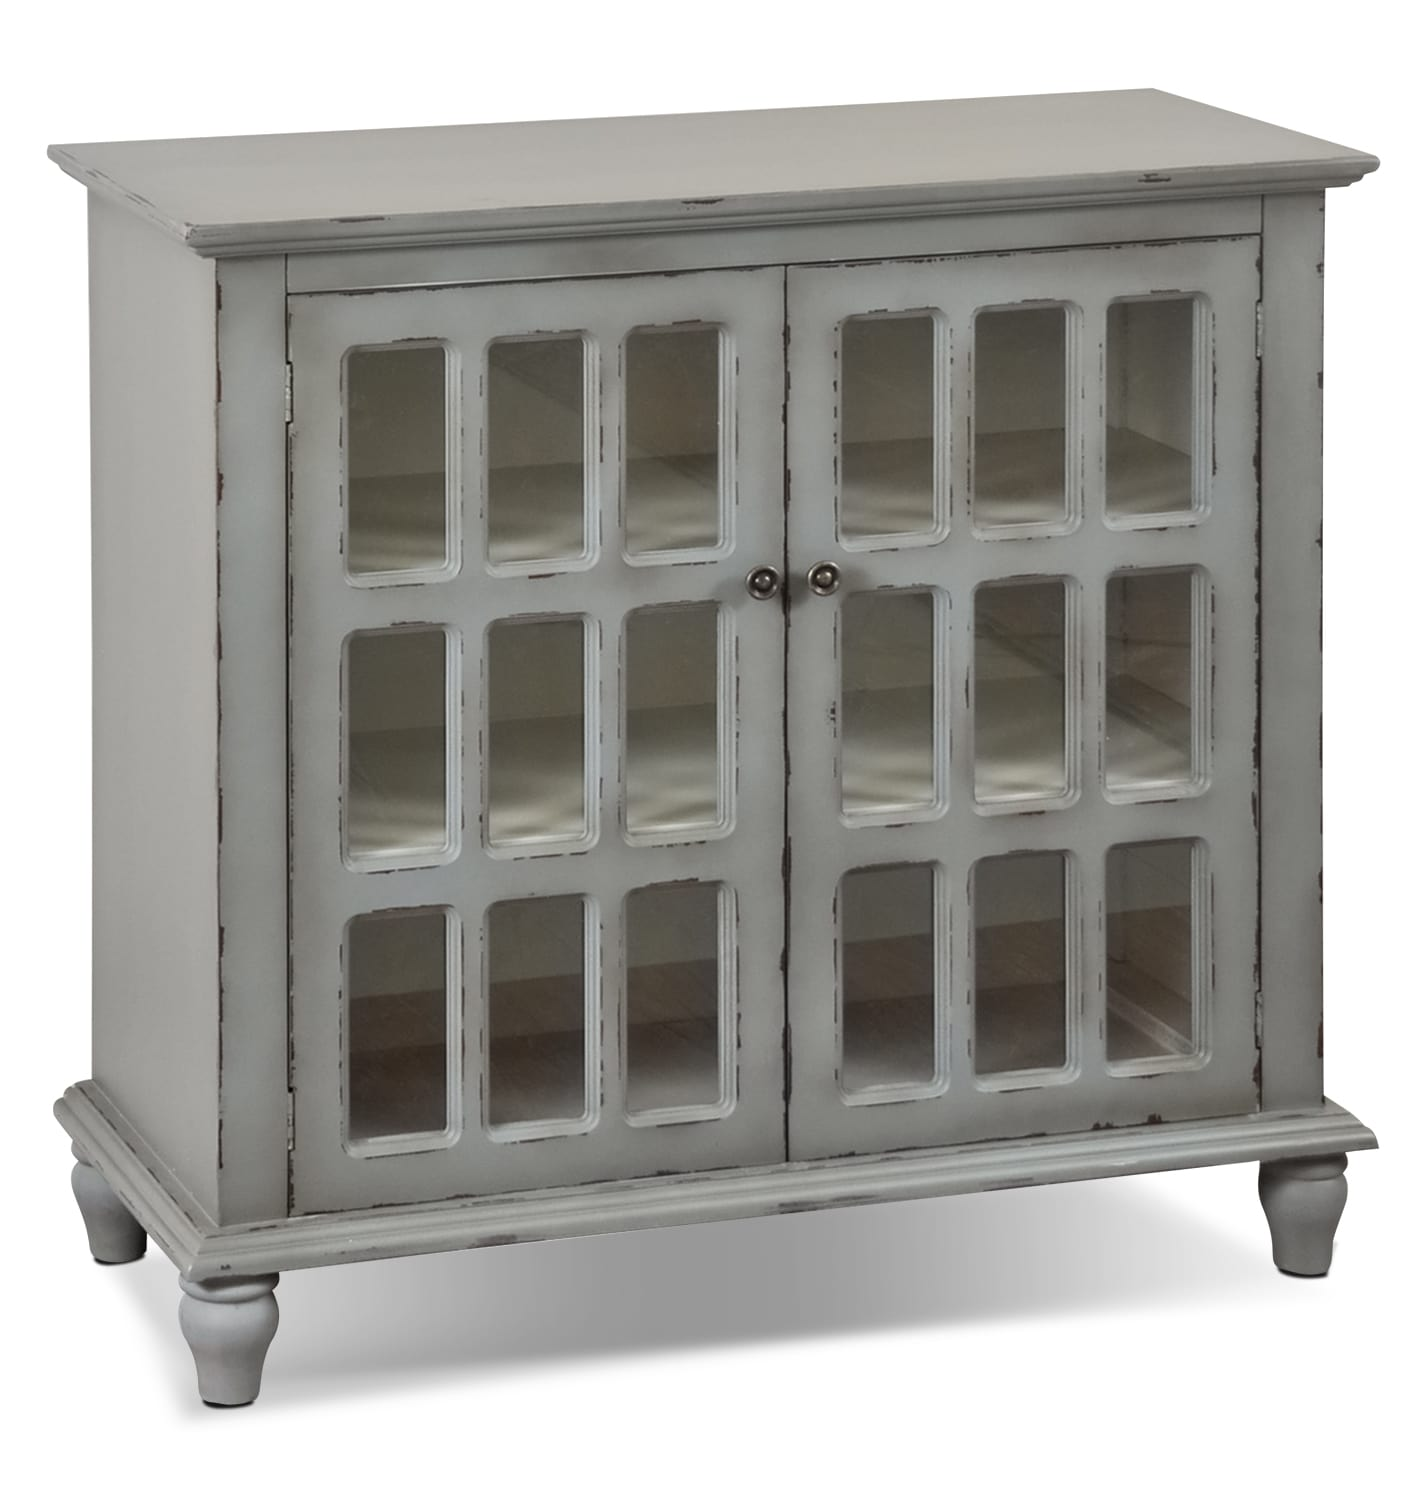 Bray Accent Cabinet - Antique Grey